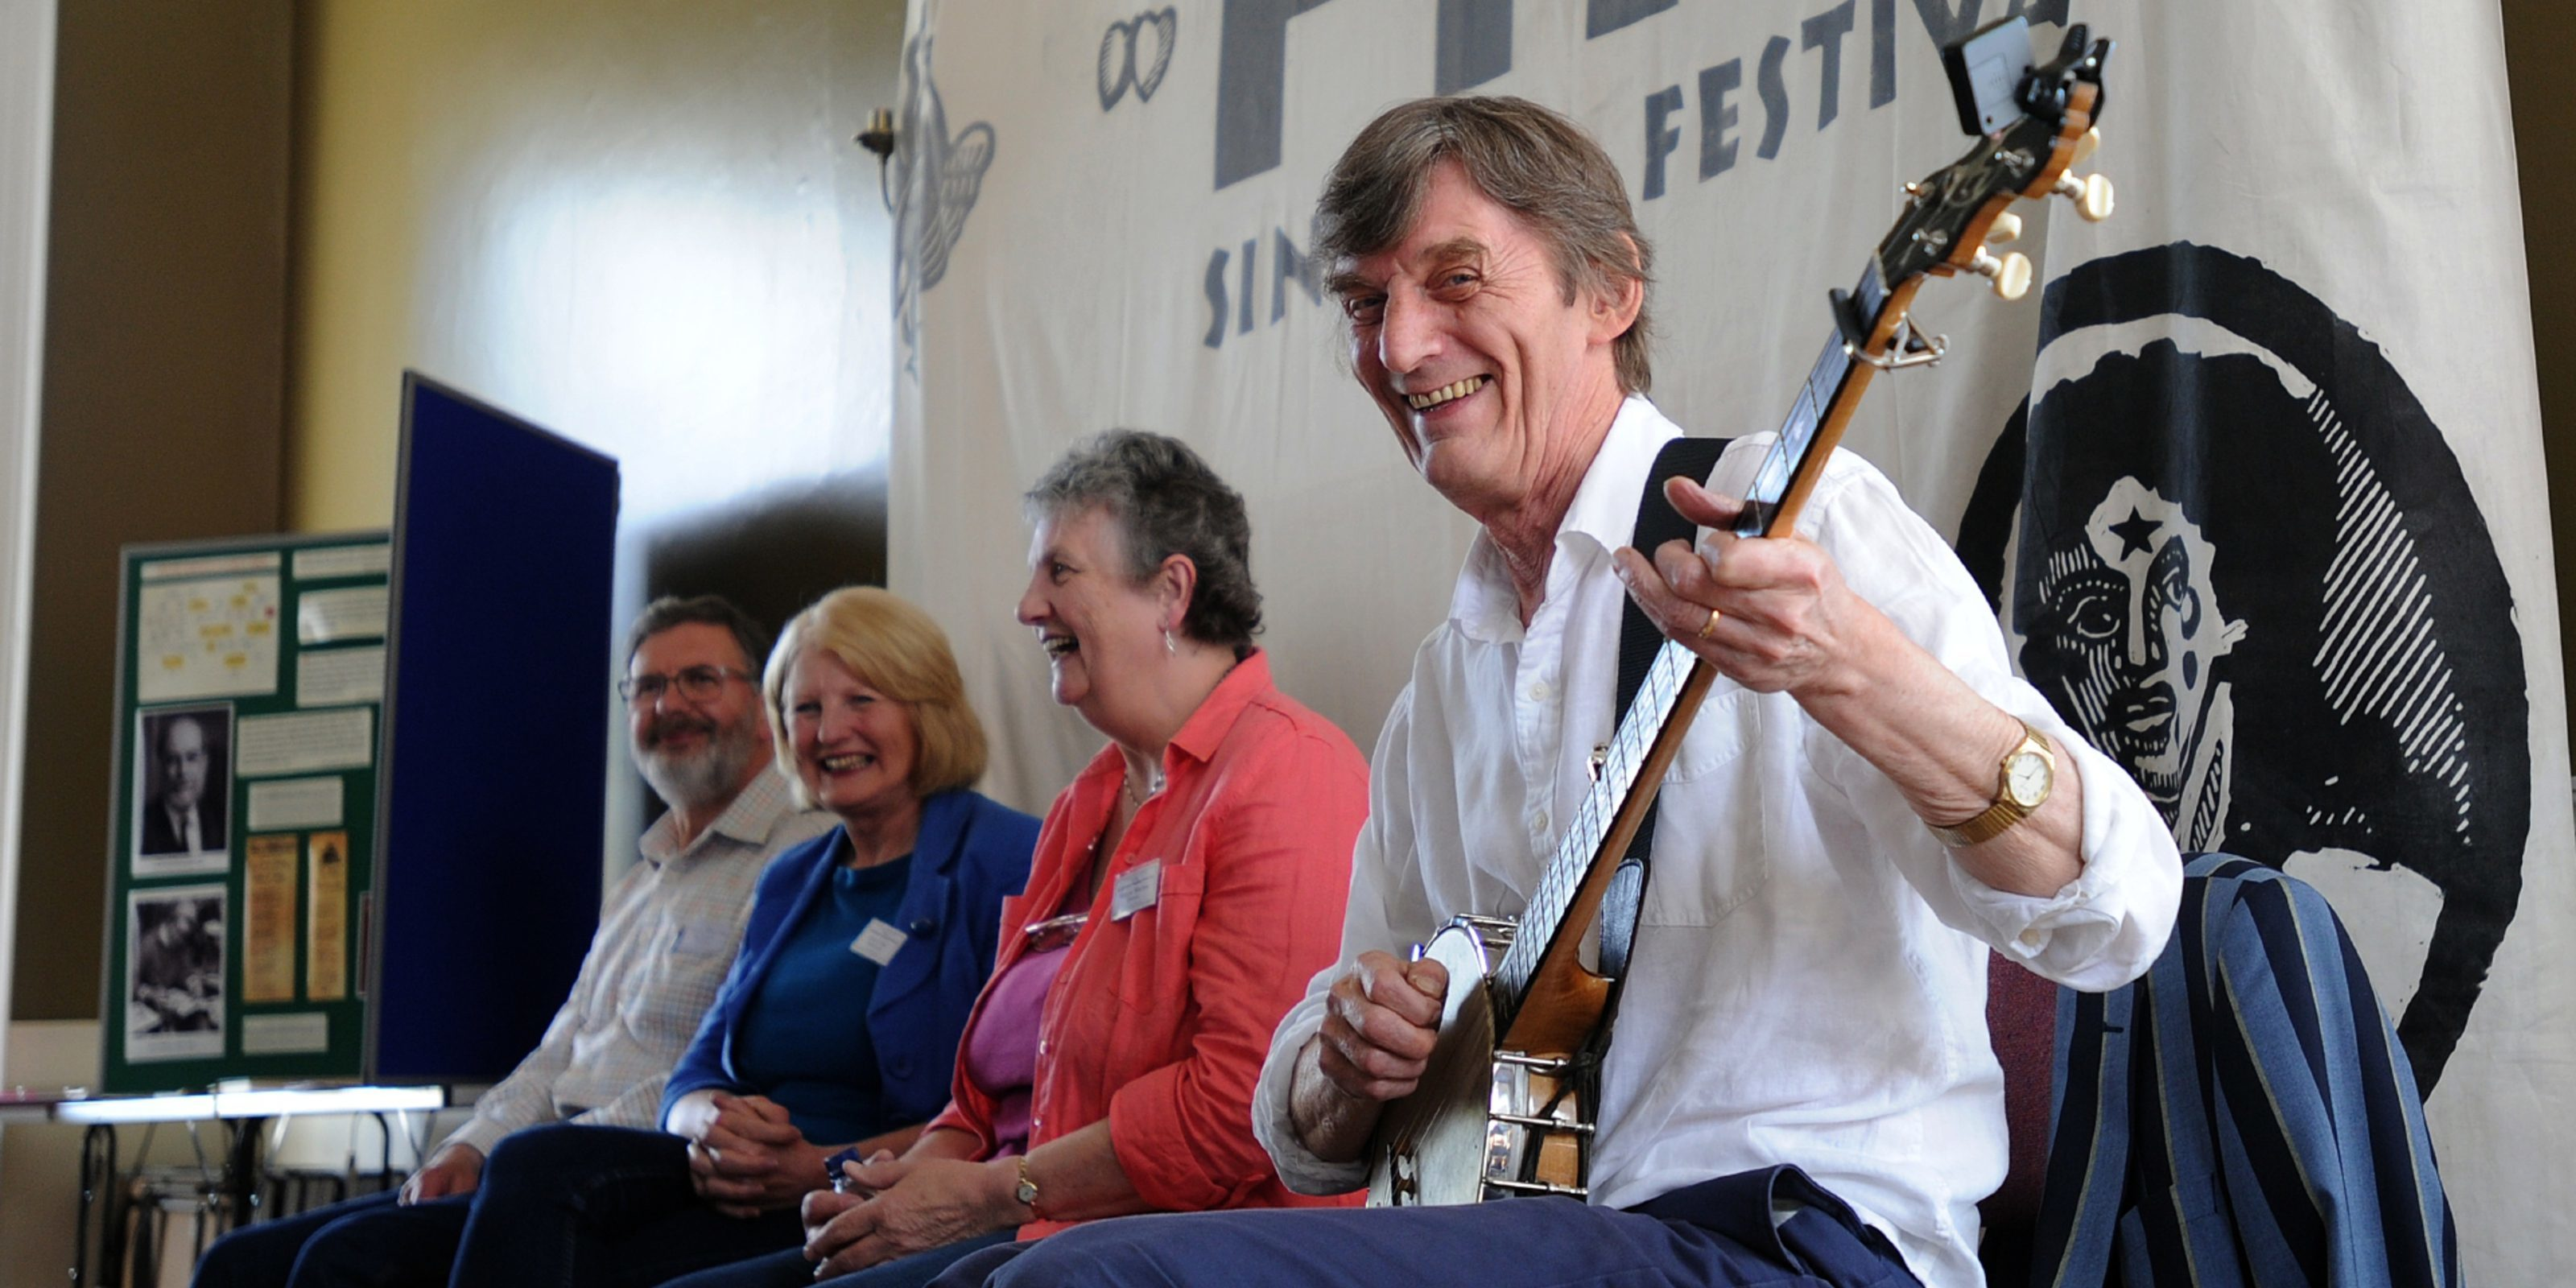 Singers Ian Russell, Janice Clark, Maggie McCrae and Pete Coe at FifeSing.